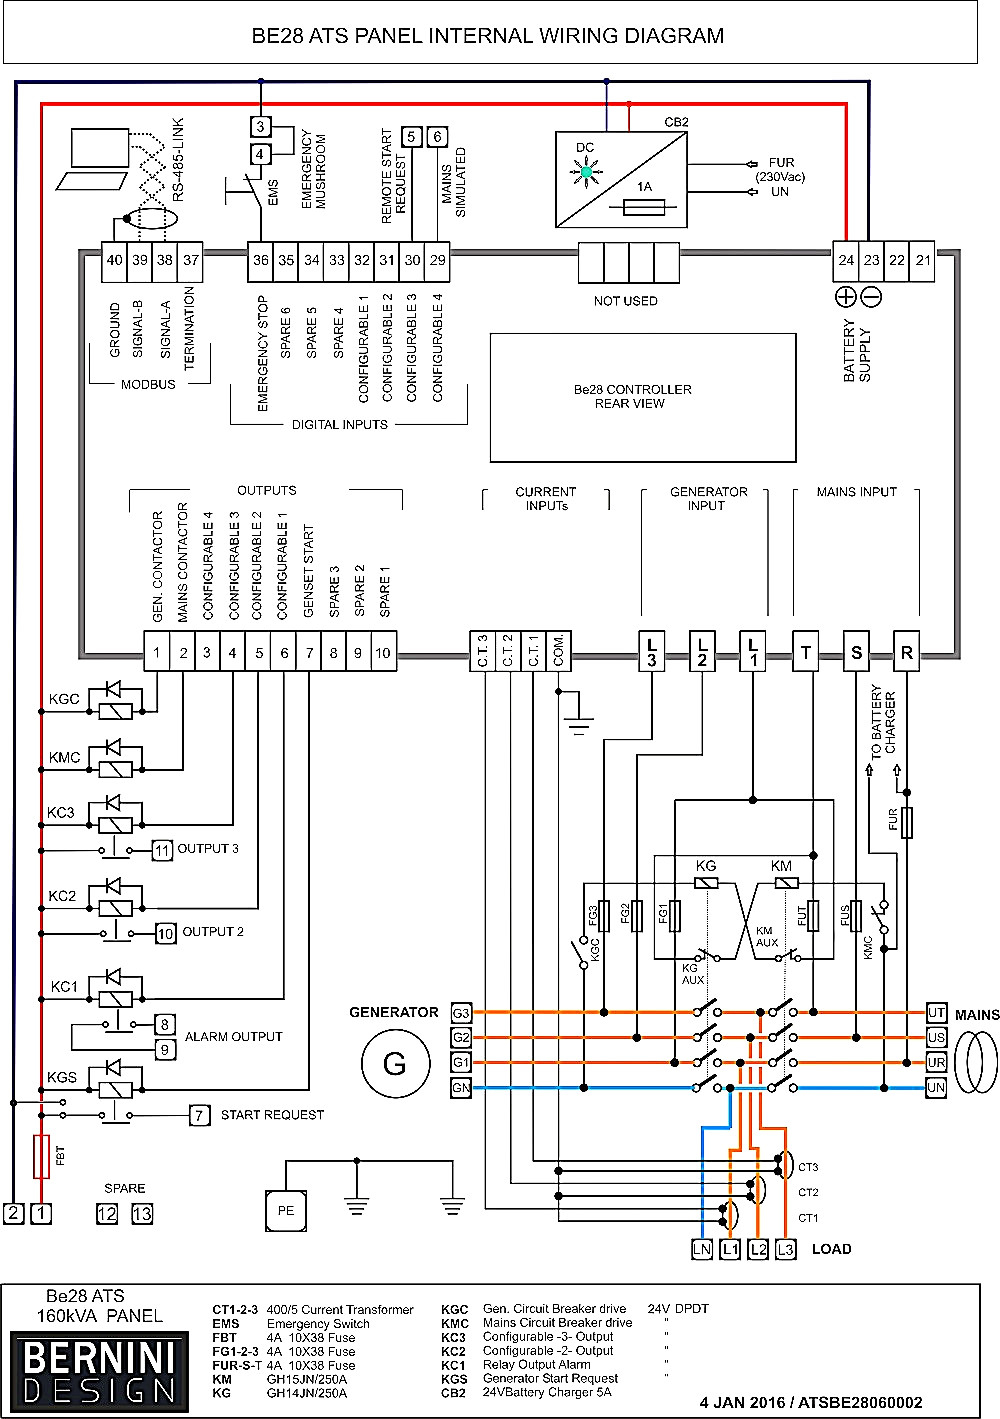 Wiring Diagram For Automatic Transfer Switch from wholefoodsonabudget.com